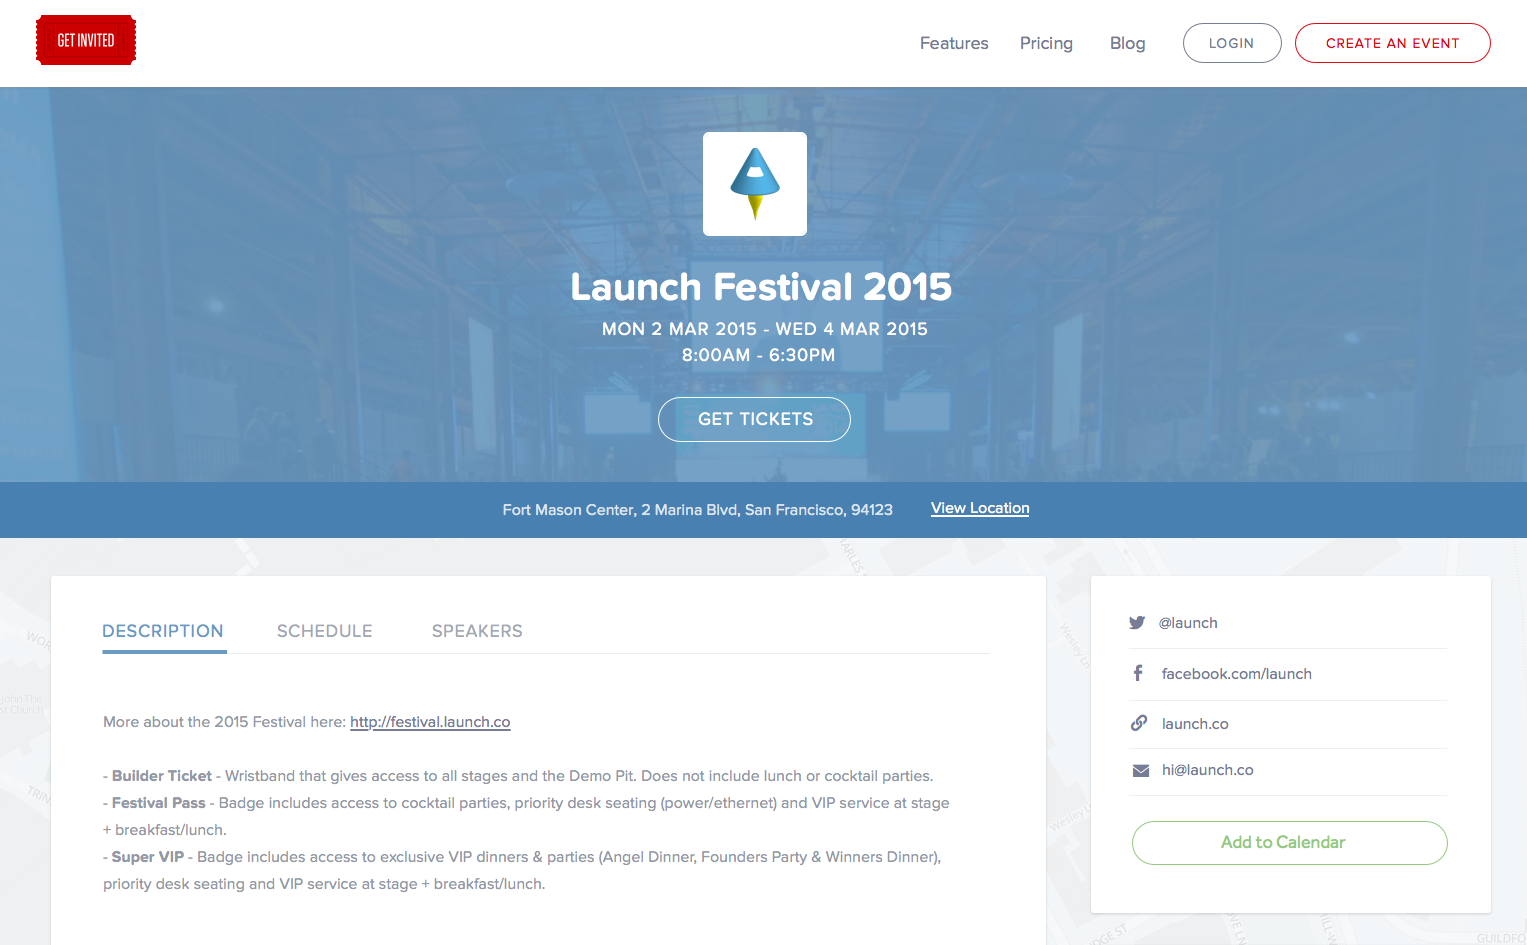 Get Invited - Launch Festival